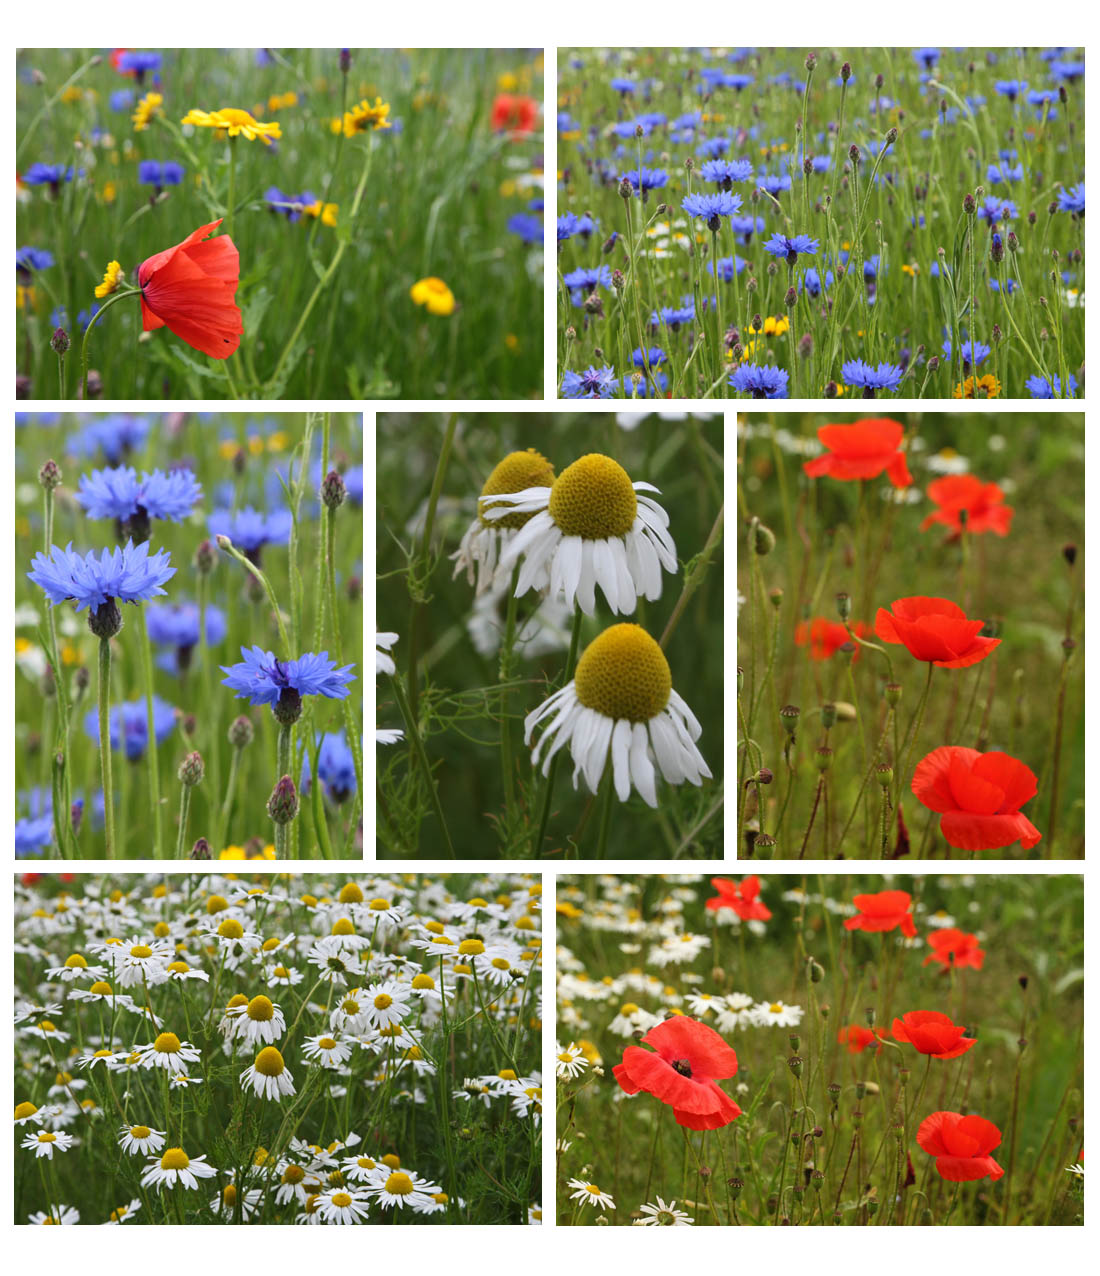 Cornfield weeds in the Garden - blue cornflower, red poppy, white mayweed, yellow corn marigold, 2011 (Living Field collection)